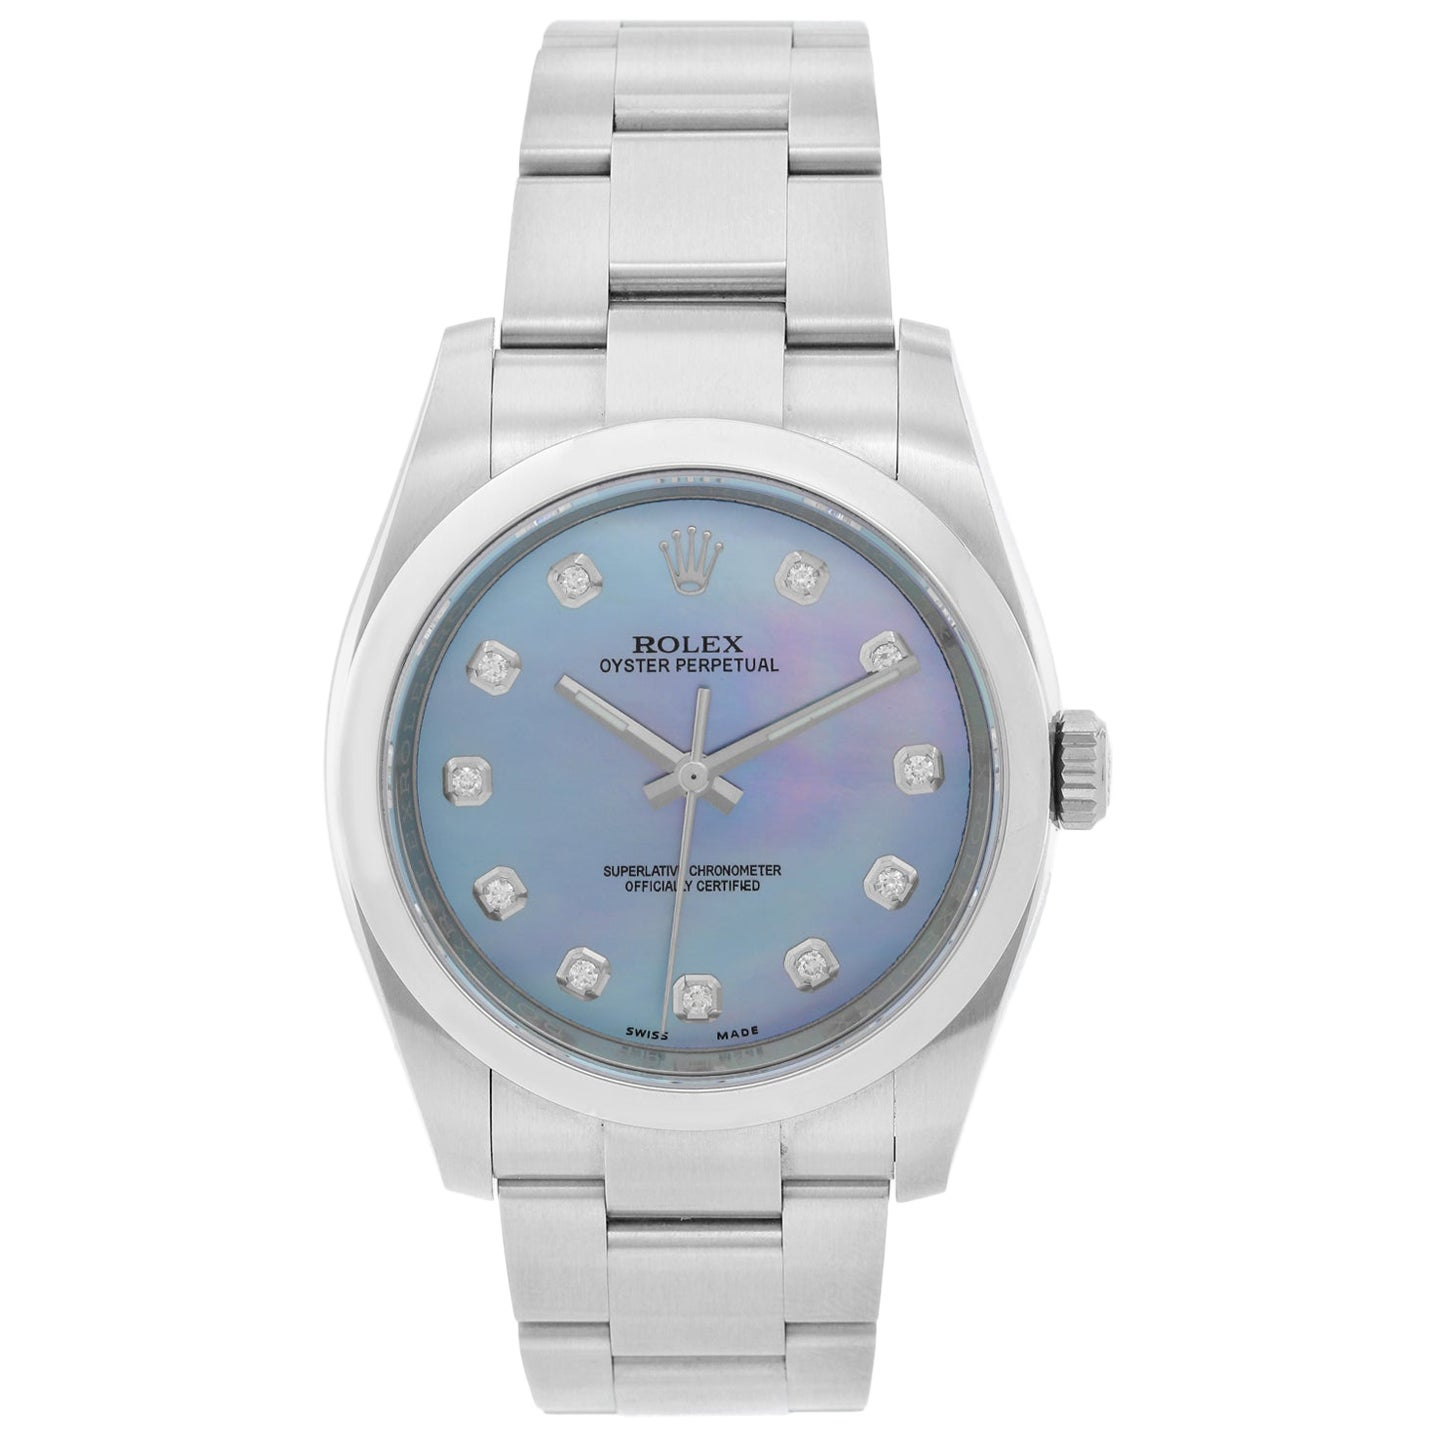 Rolex Oyster Perpetual Men's Stainless Steel Watch 116000